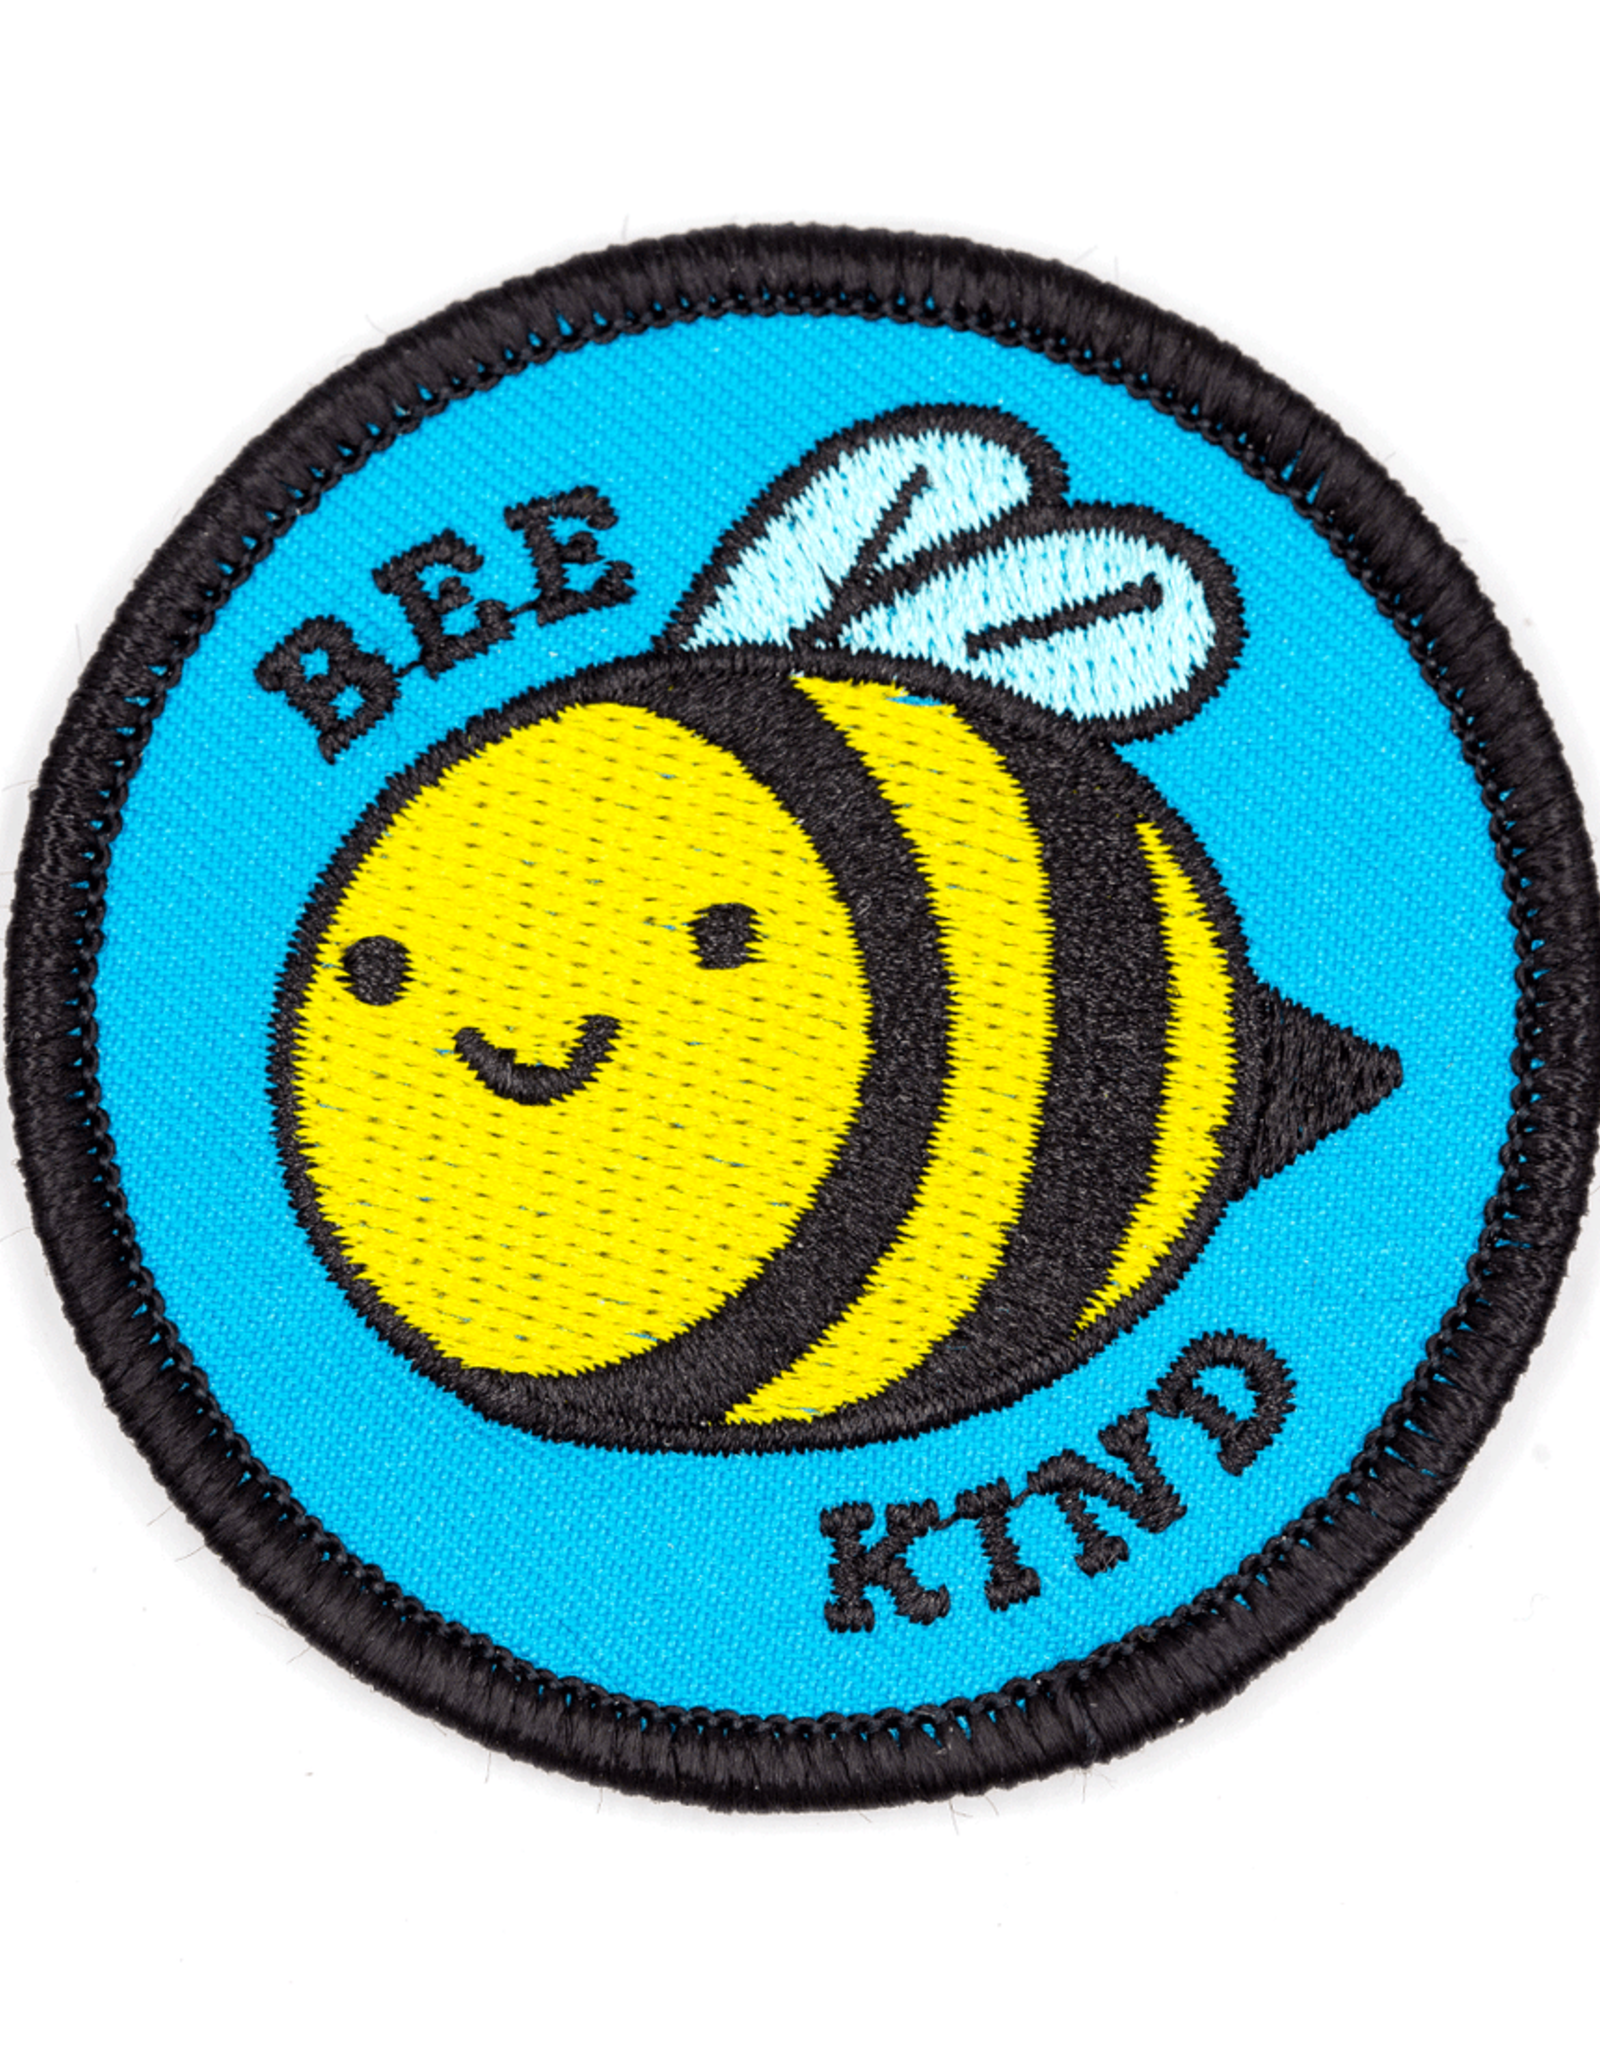 These Are Things Patch - Bee Kind